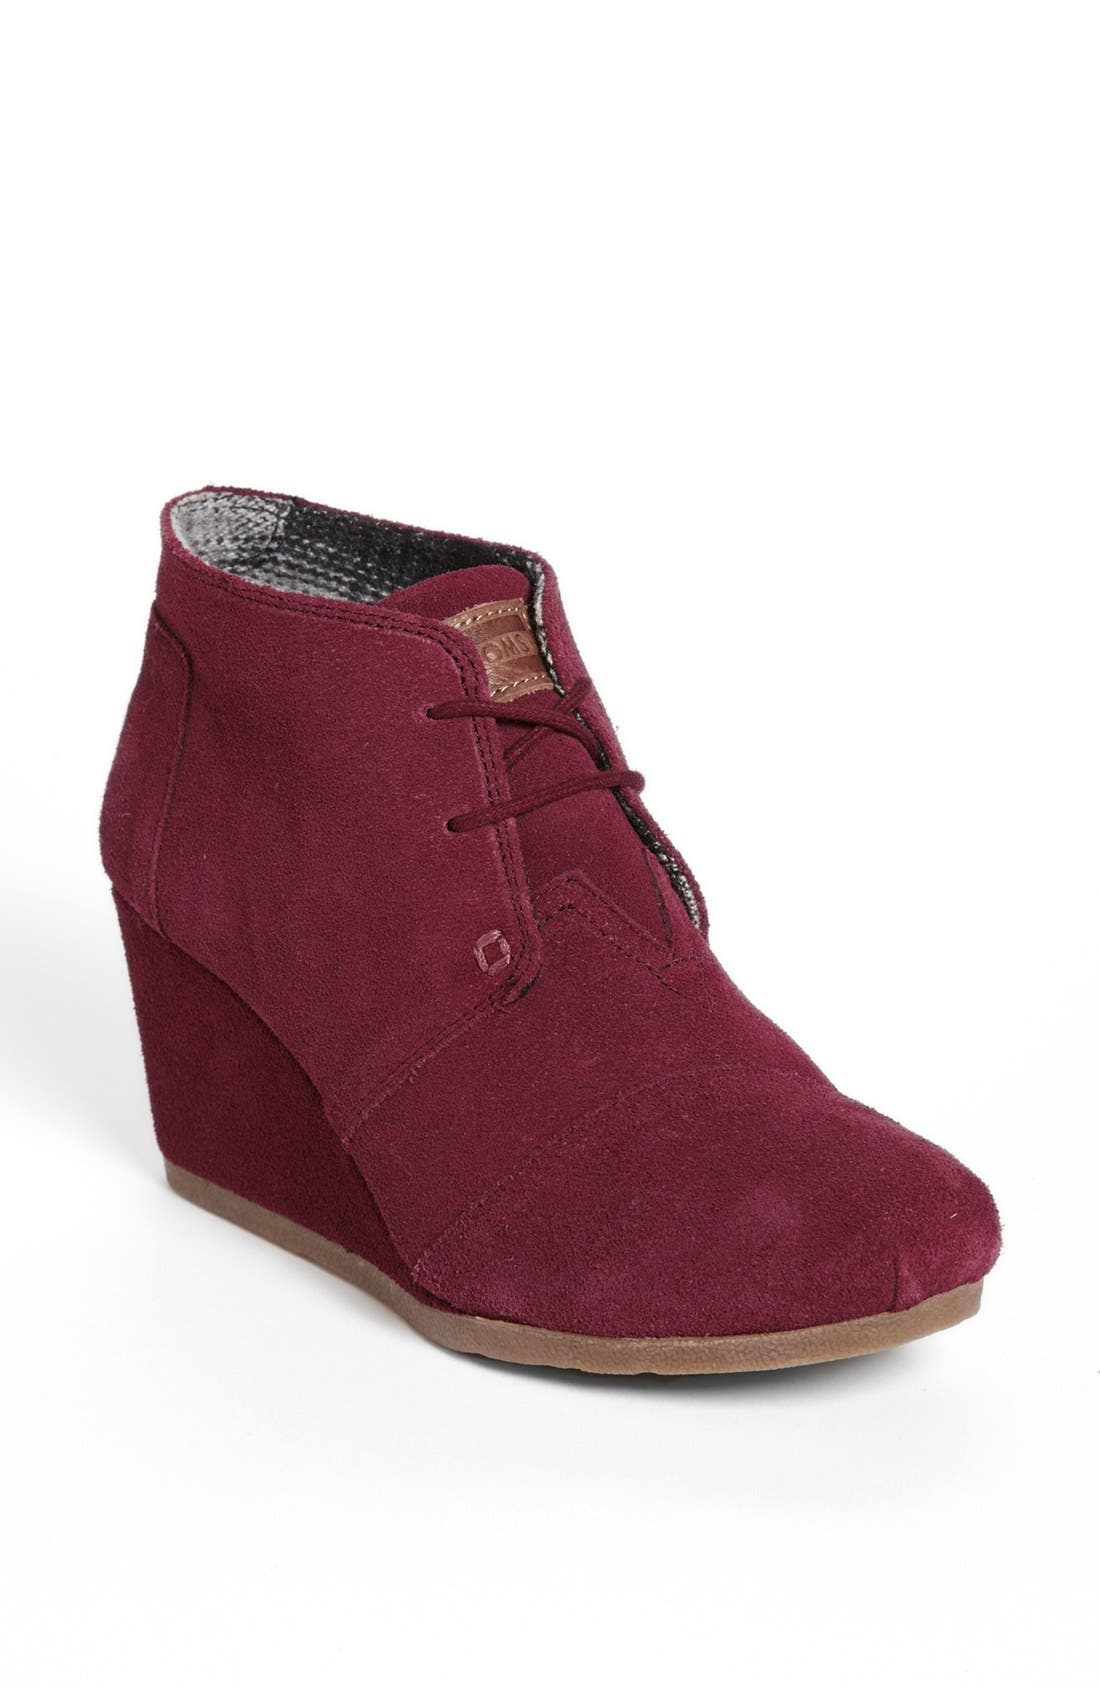 Alternate Image 1 Selected - TOMS 'Desert' Wedge Bootie